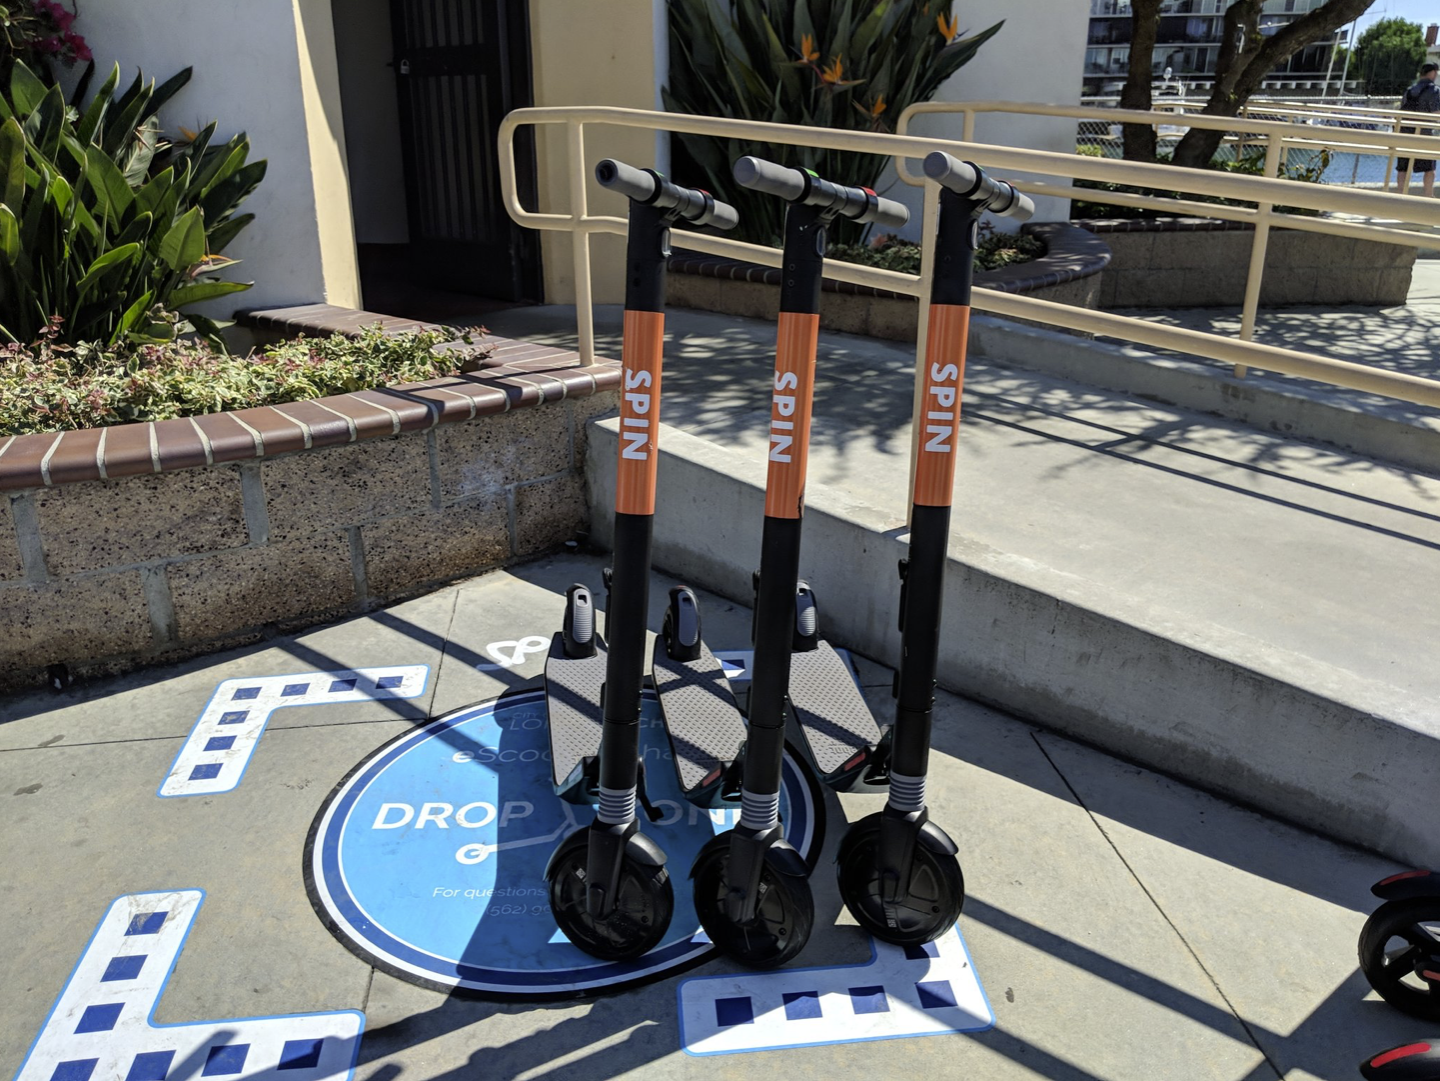 Bikes, scooters, and personal data: Protecting privacy while managing micromobility